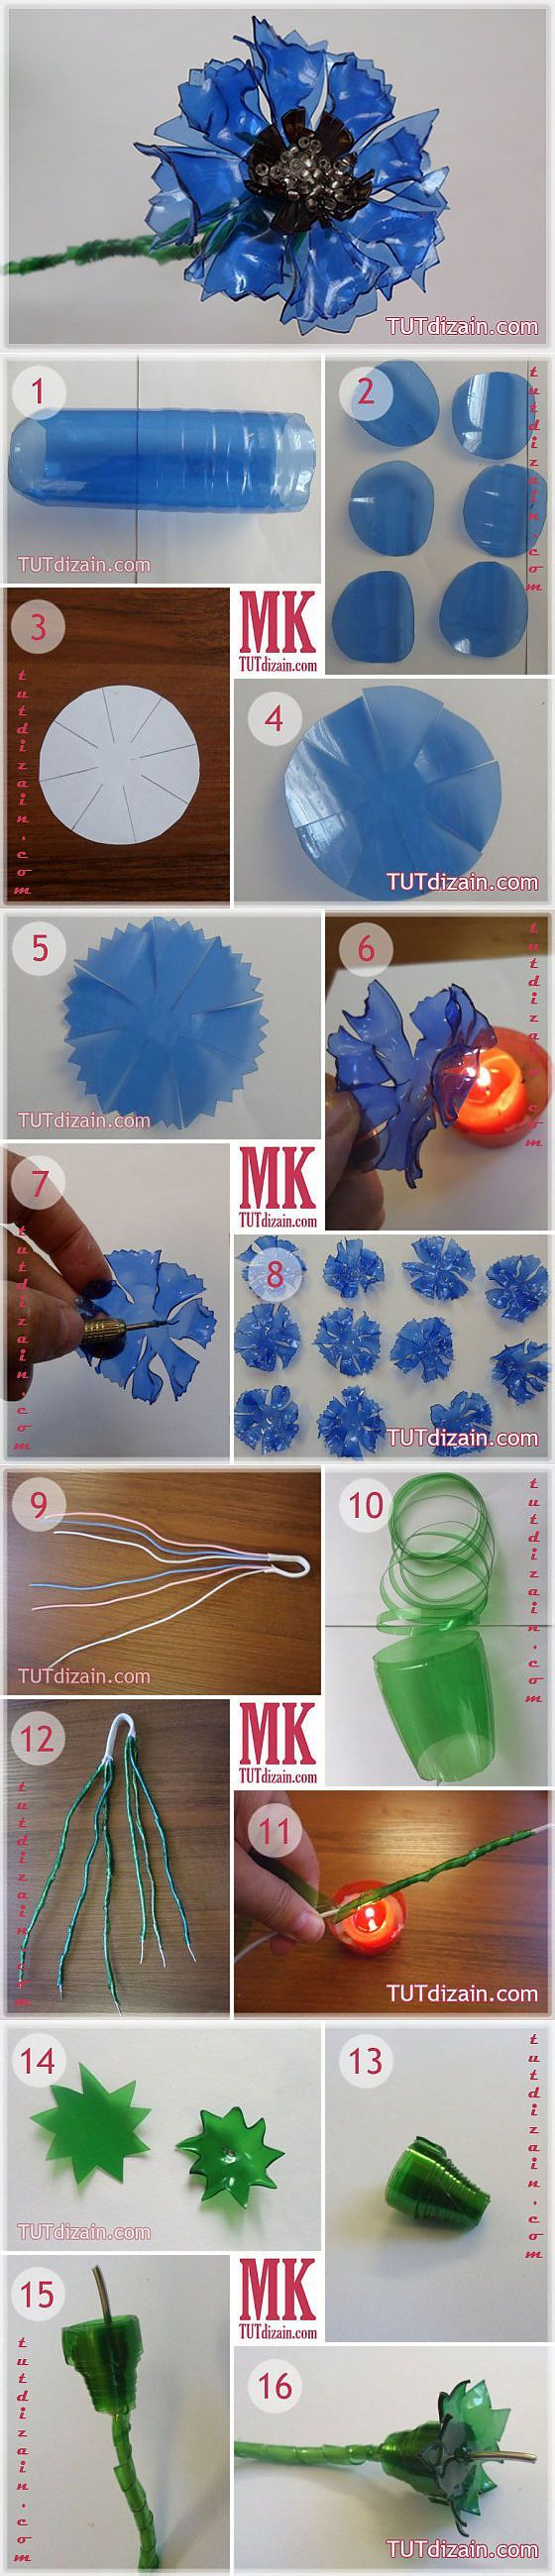 "Cornflowers from plastic bottles ""Planet of needlework - step by step pics"